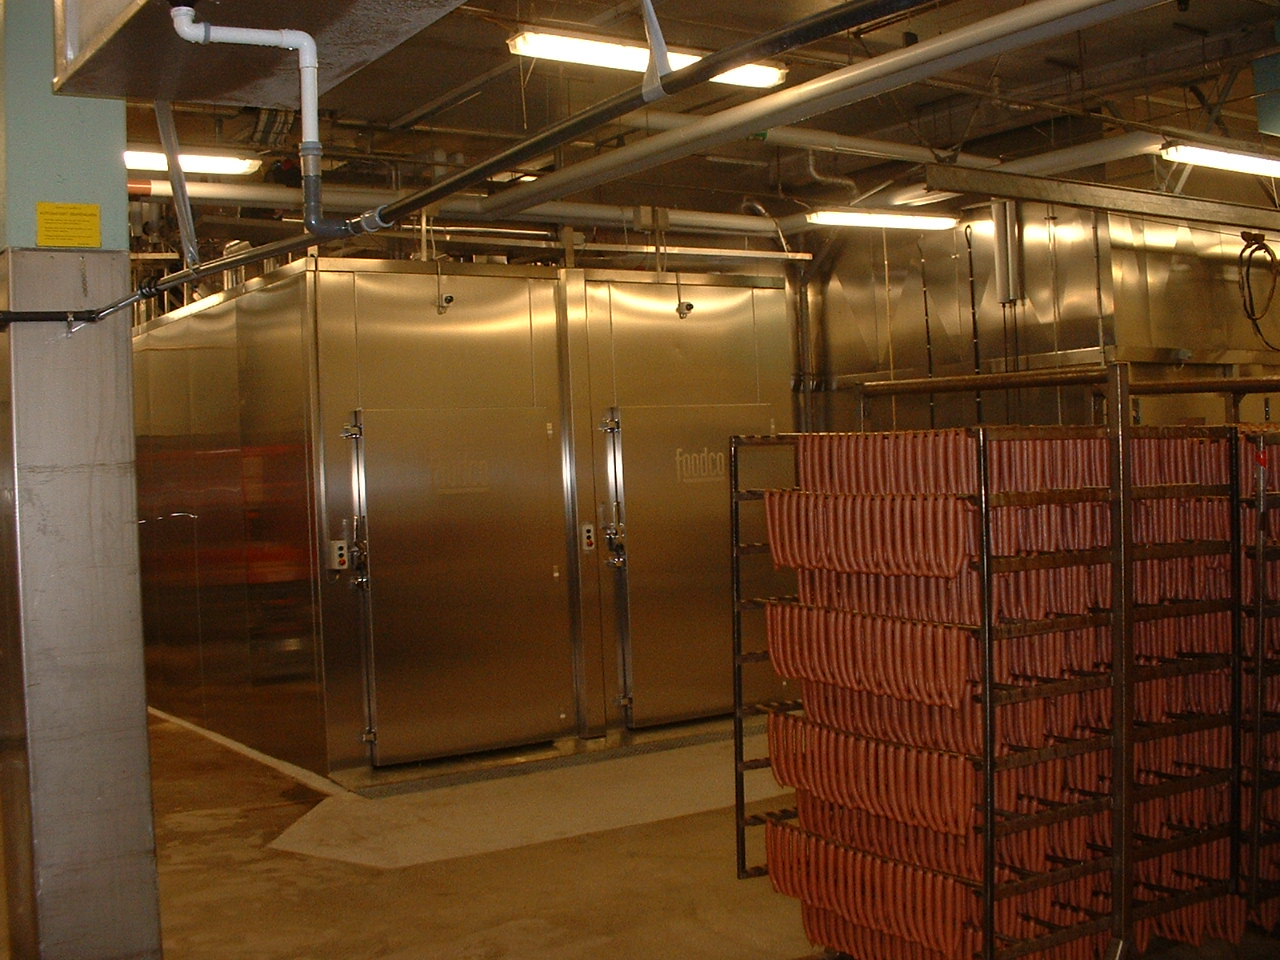 Foodco Global Machinery - With Foodco's cookers you get state-of-the-art processing equipment